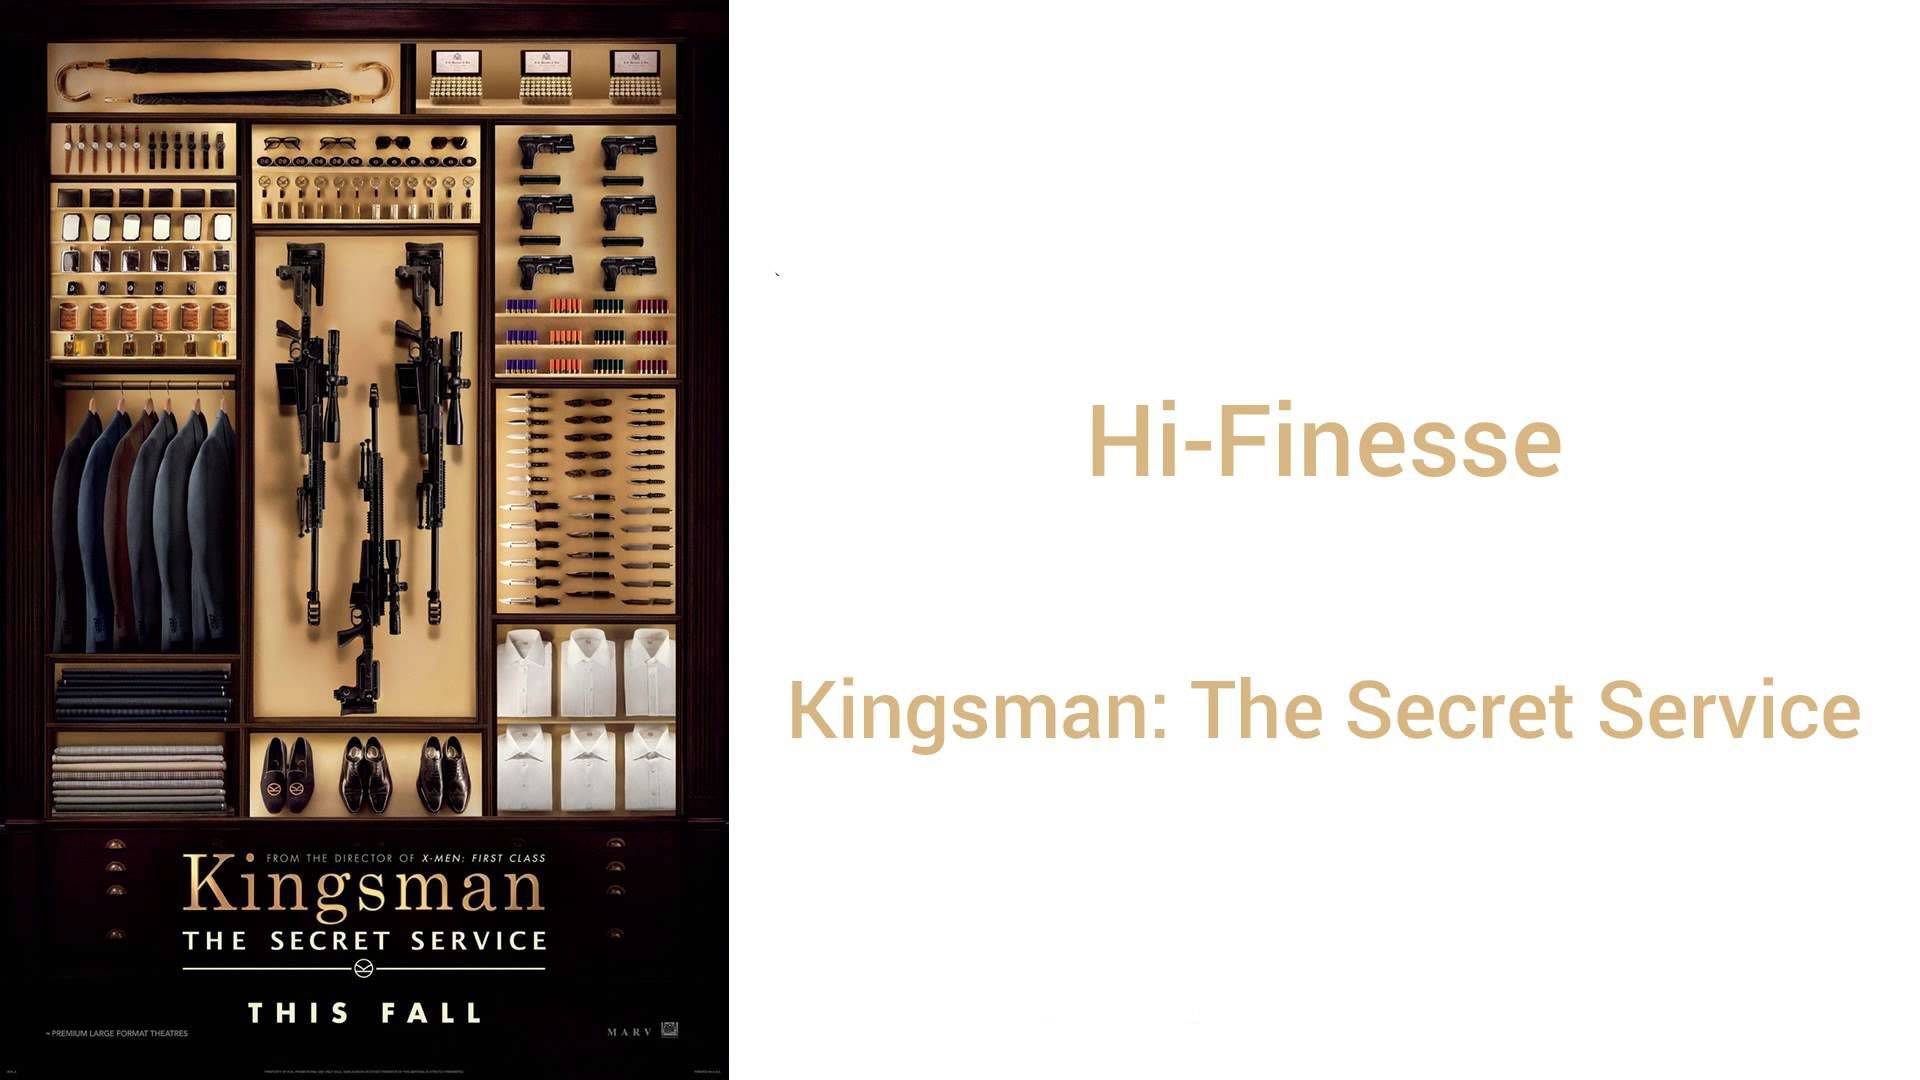 kingsman secret service wallpaper 1920x1080 565997 wallpaperup